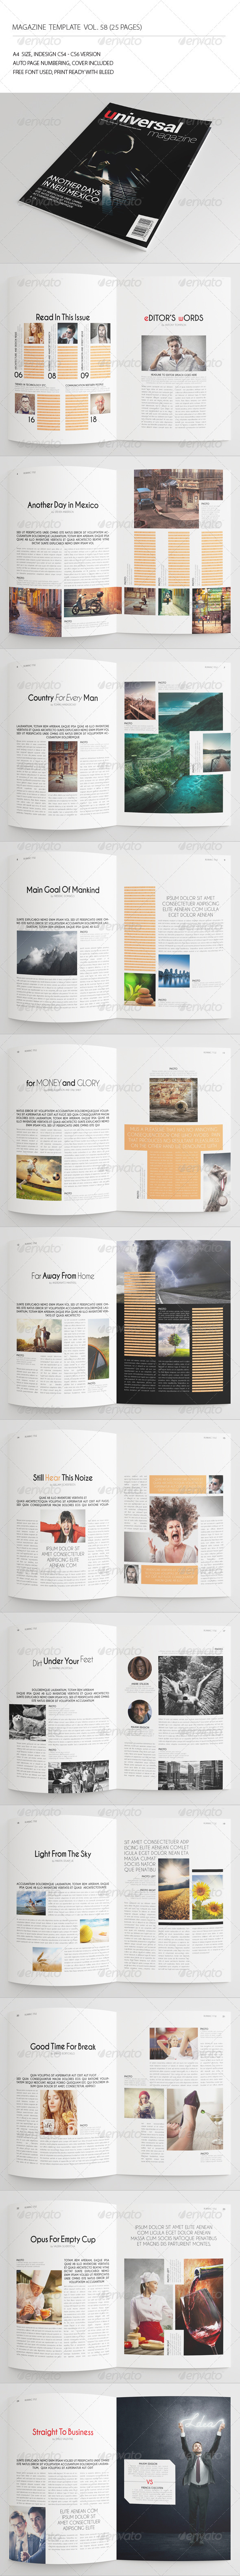 GraphicRiver 25 Pages Universal Magazine Vol58 7770391